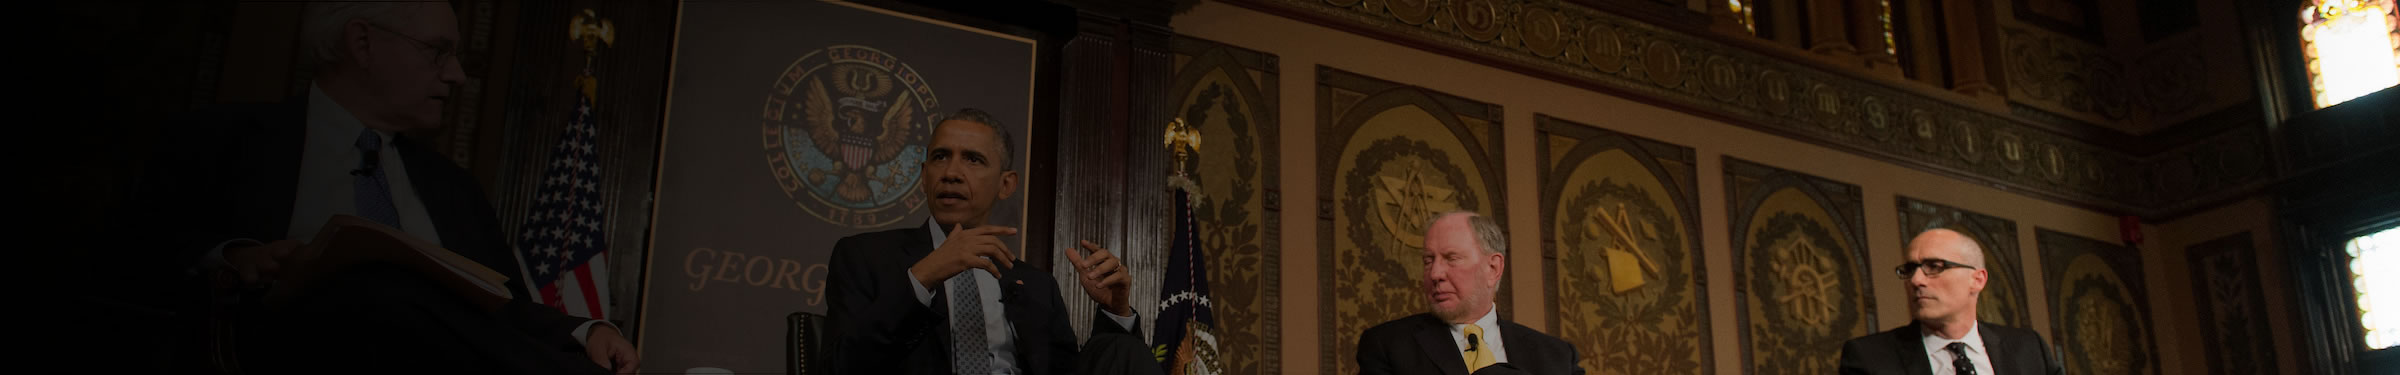 President Barack Obama speaks at a National Leadership Convening on poverty in May 2015.